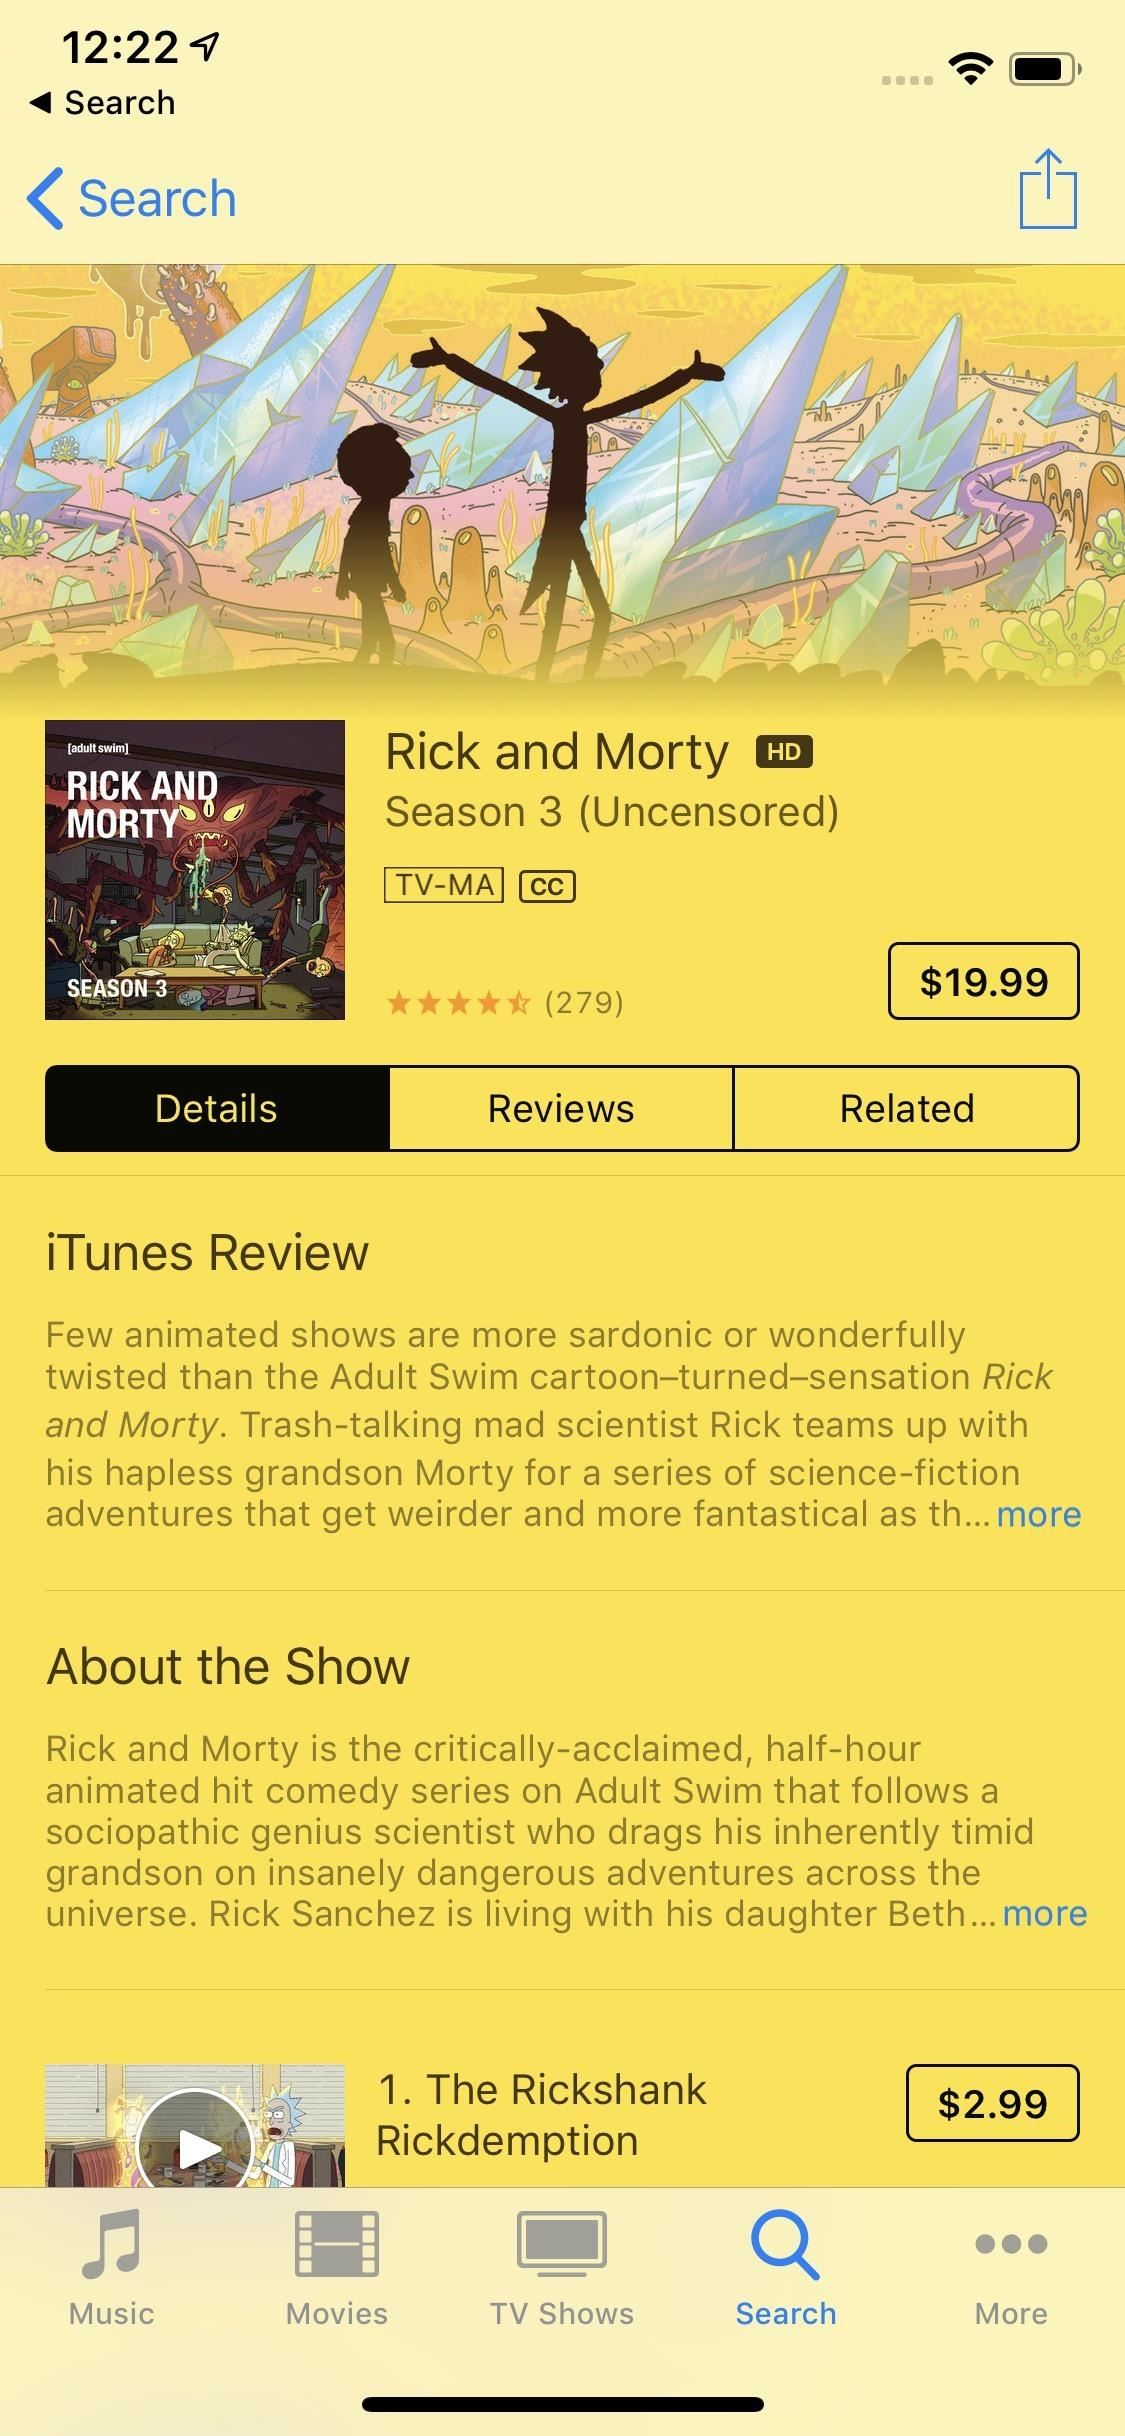 & # 39; Rick & Morty returns this November - learn how to catch up with your favorites or review them again